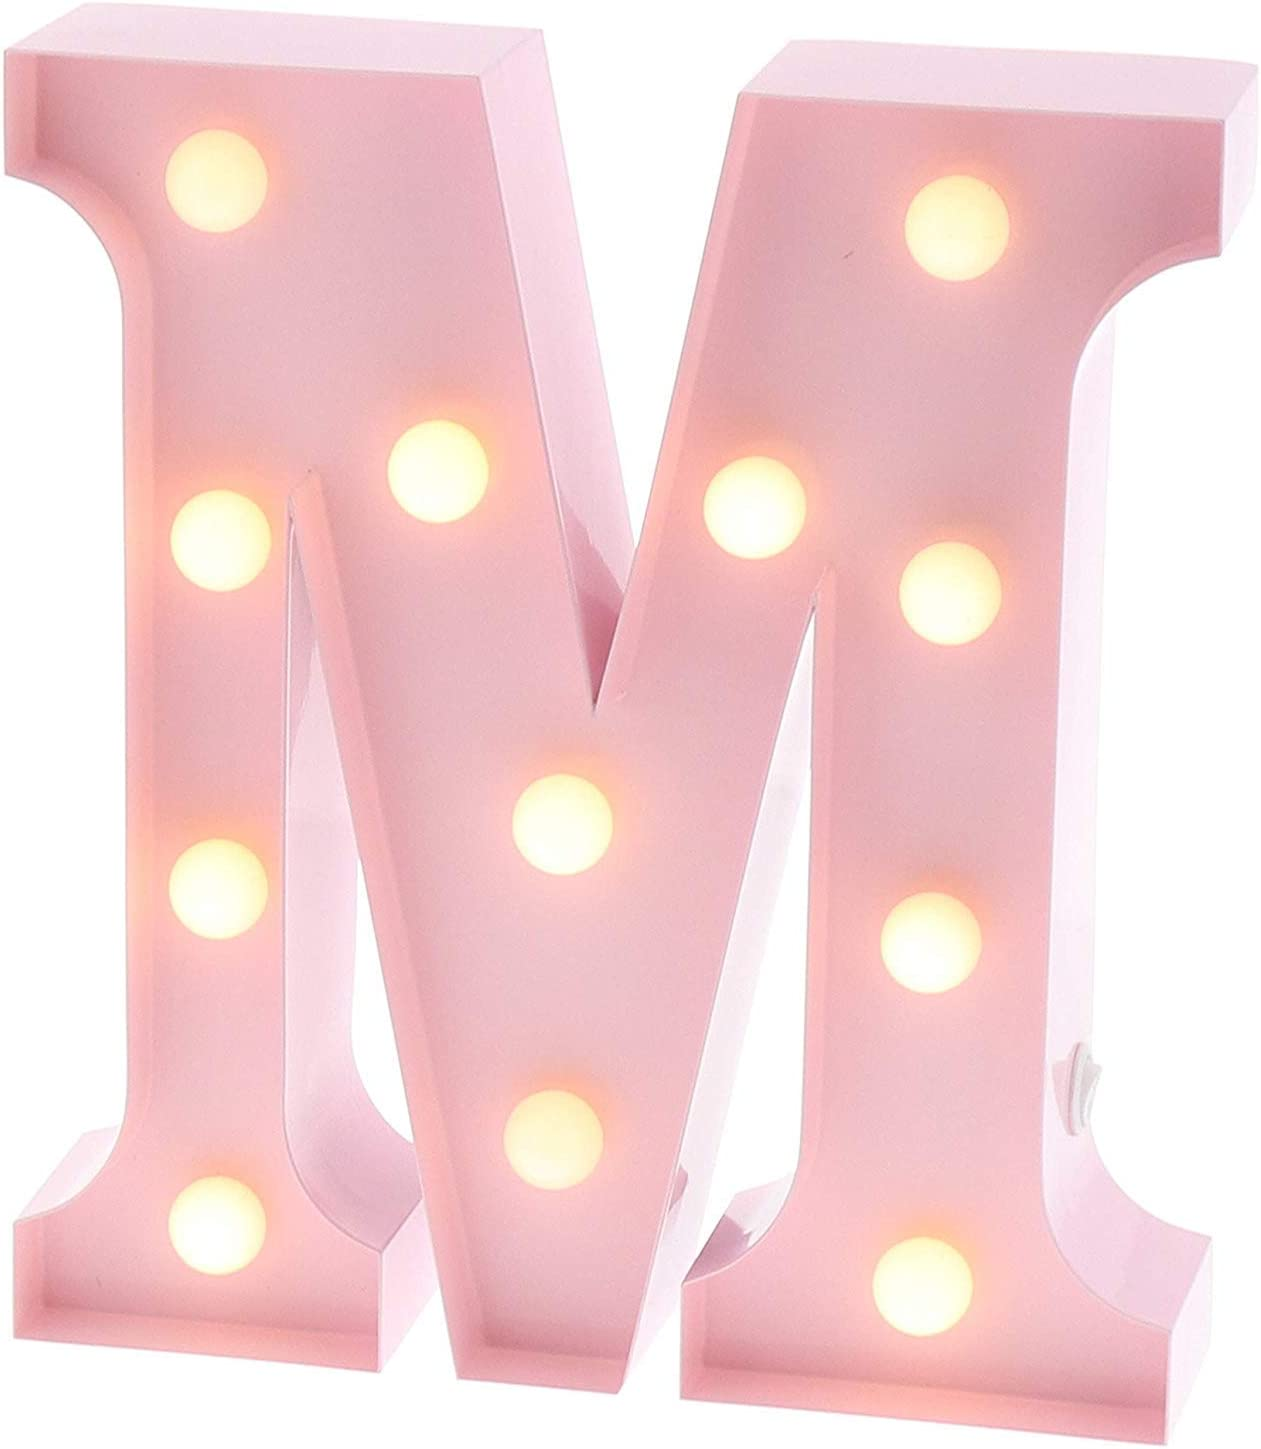 Baby Pink KJKJ Eletina Tin Signs Metal Marquee Letter M Light Up Wall Initial Nursery Letter Home and Event Decoration 9